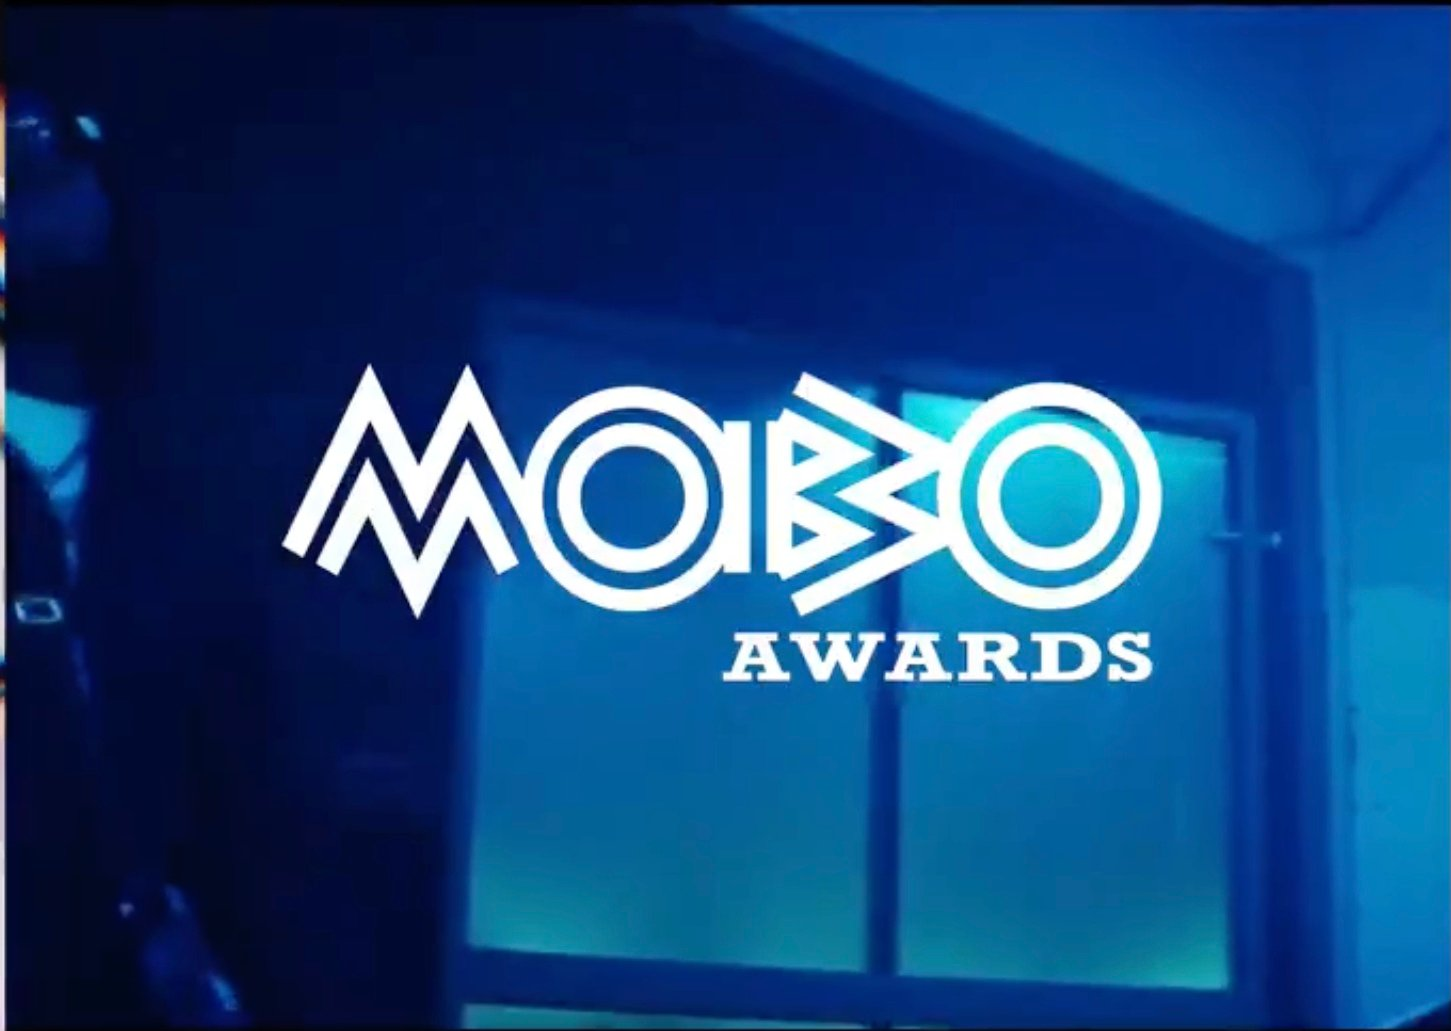 MOBO Awards 2020: Full list of all Winners